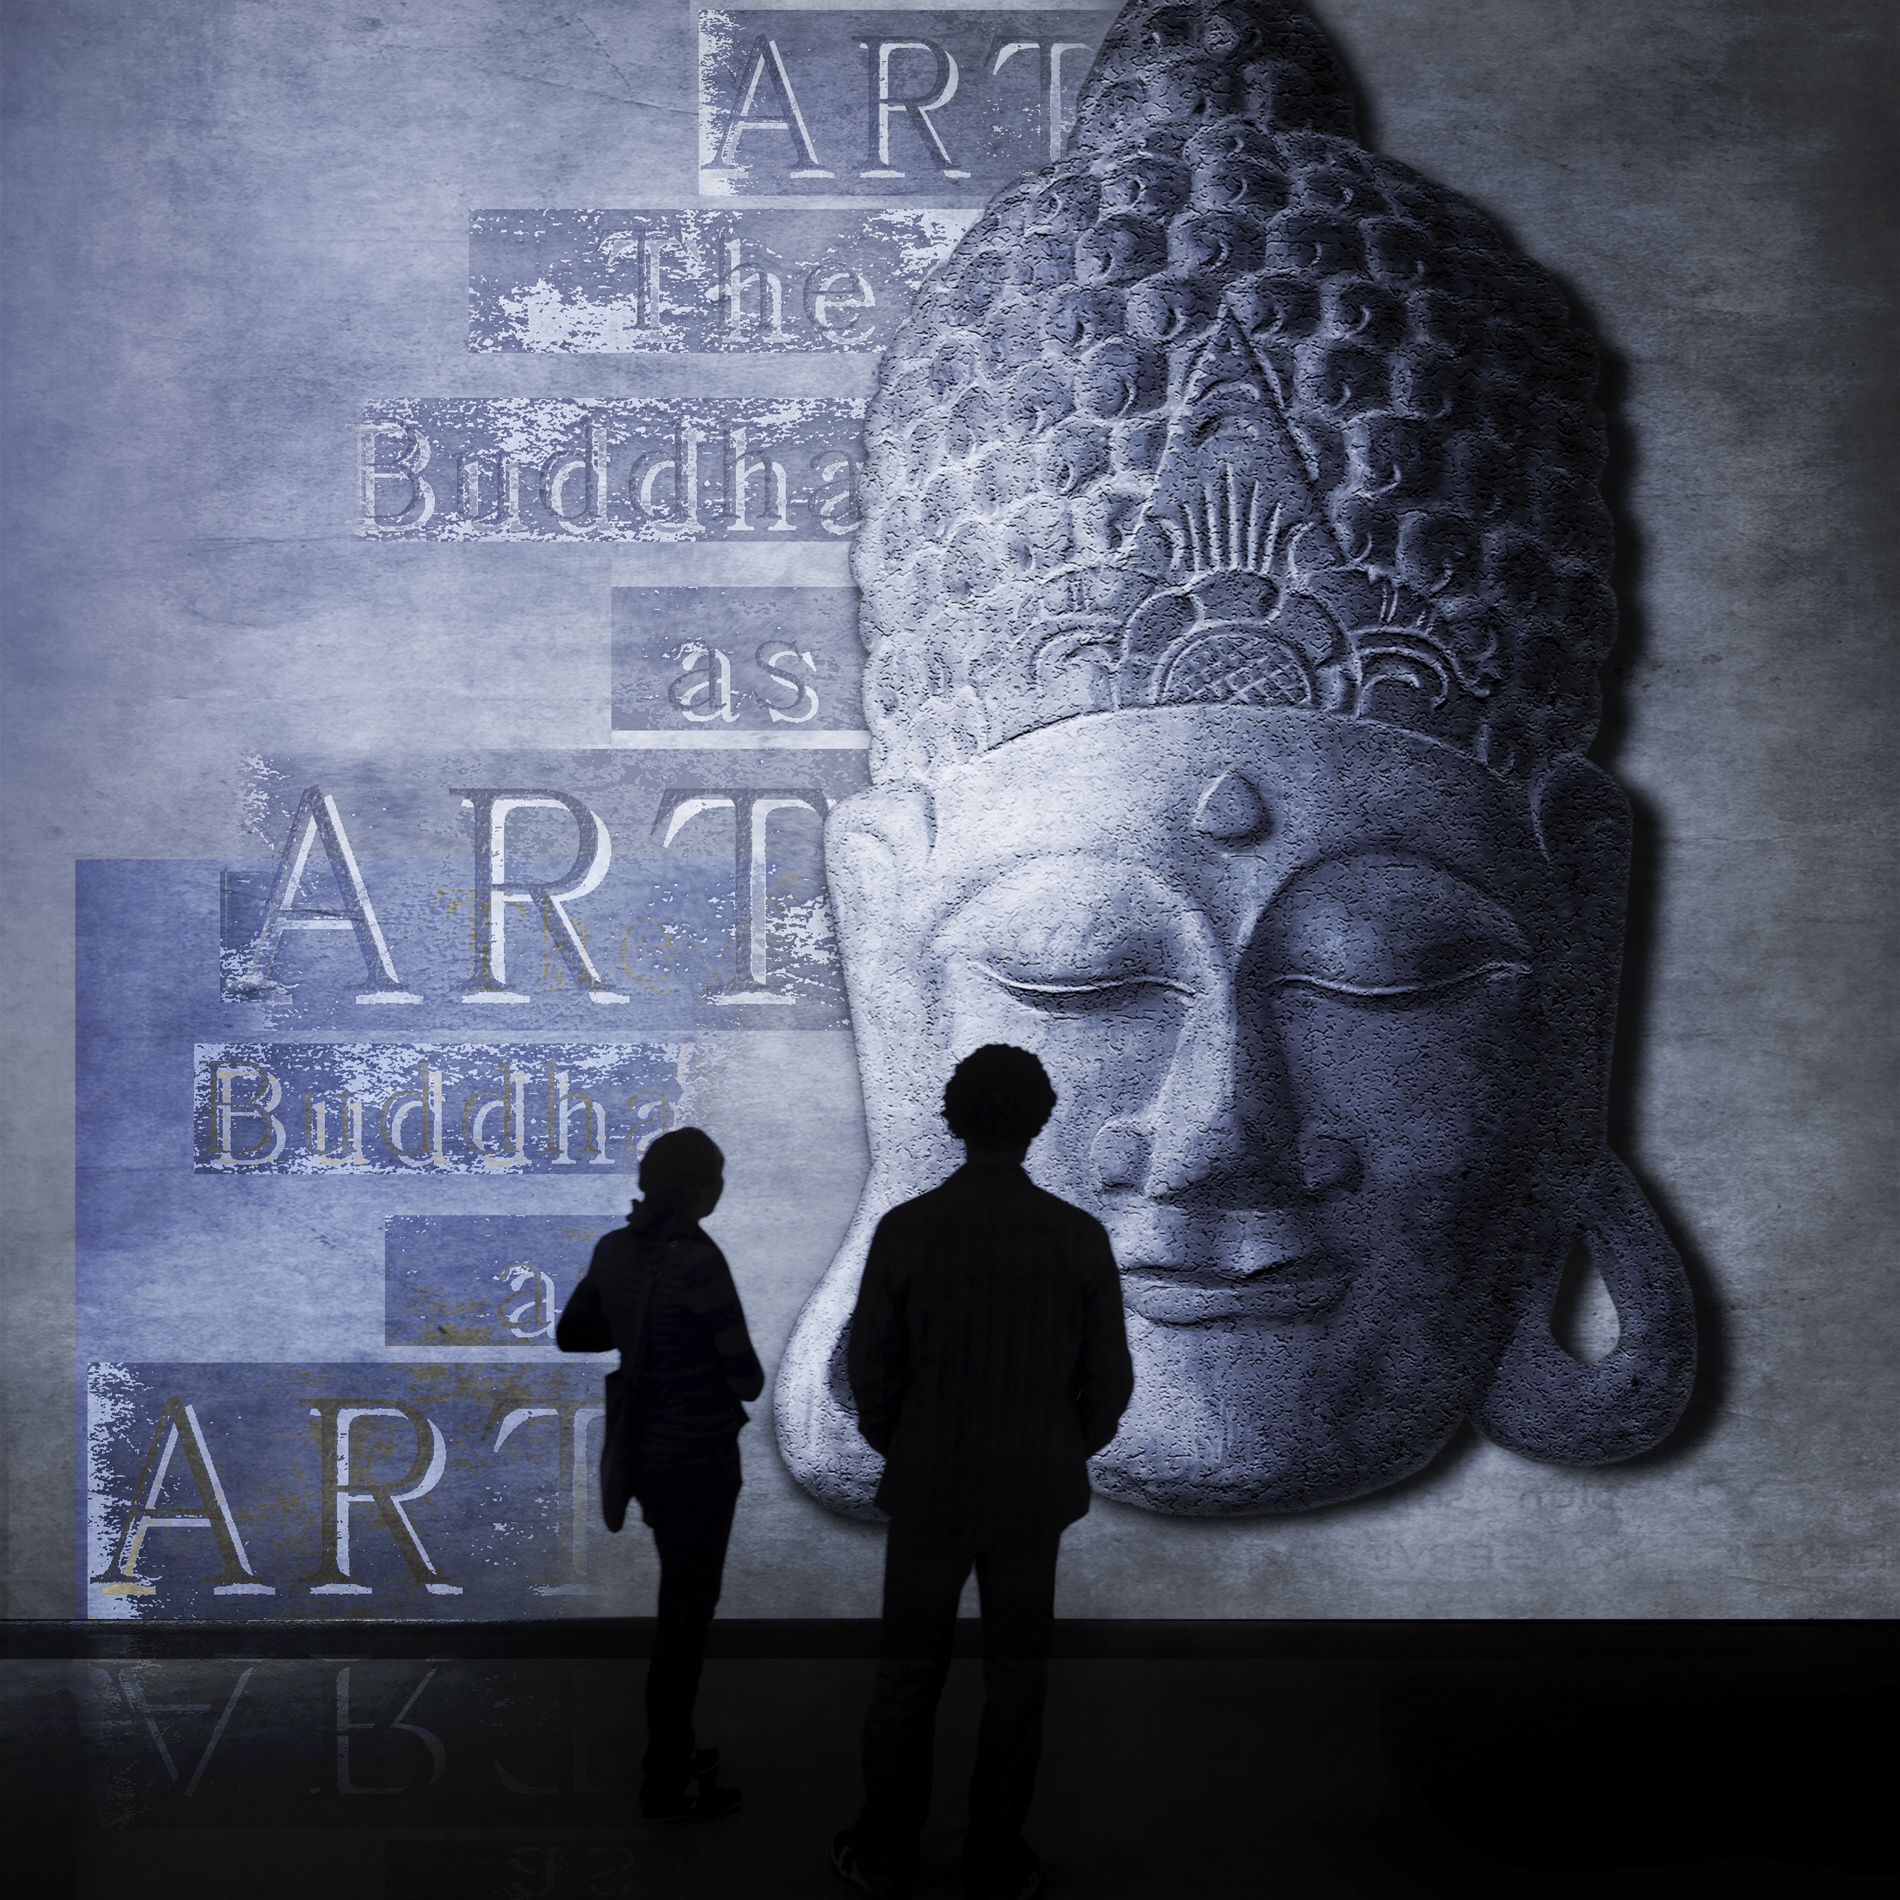 The Buddah As Art